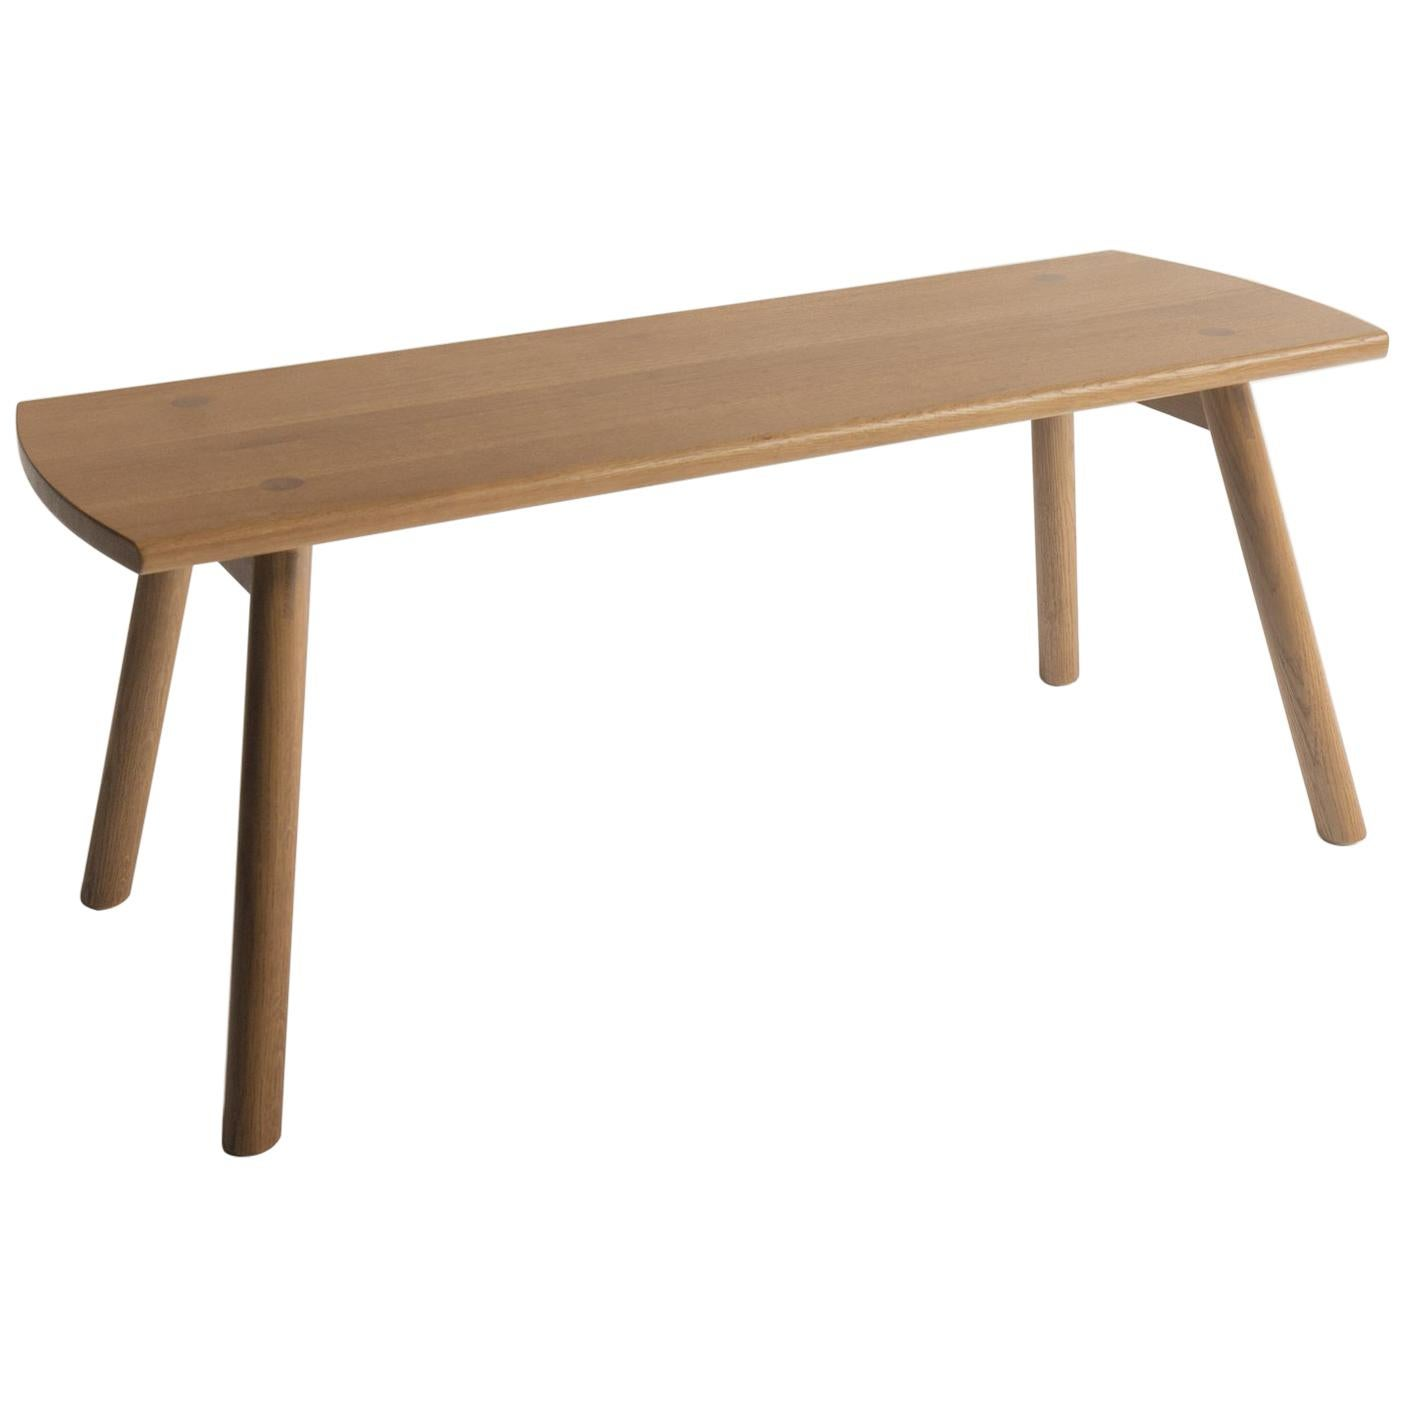 Sol Bench by Sun at Six, Sienna Minimalist Bench in Oak Wood